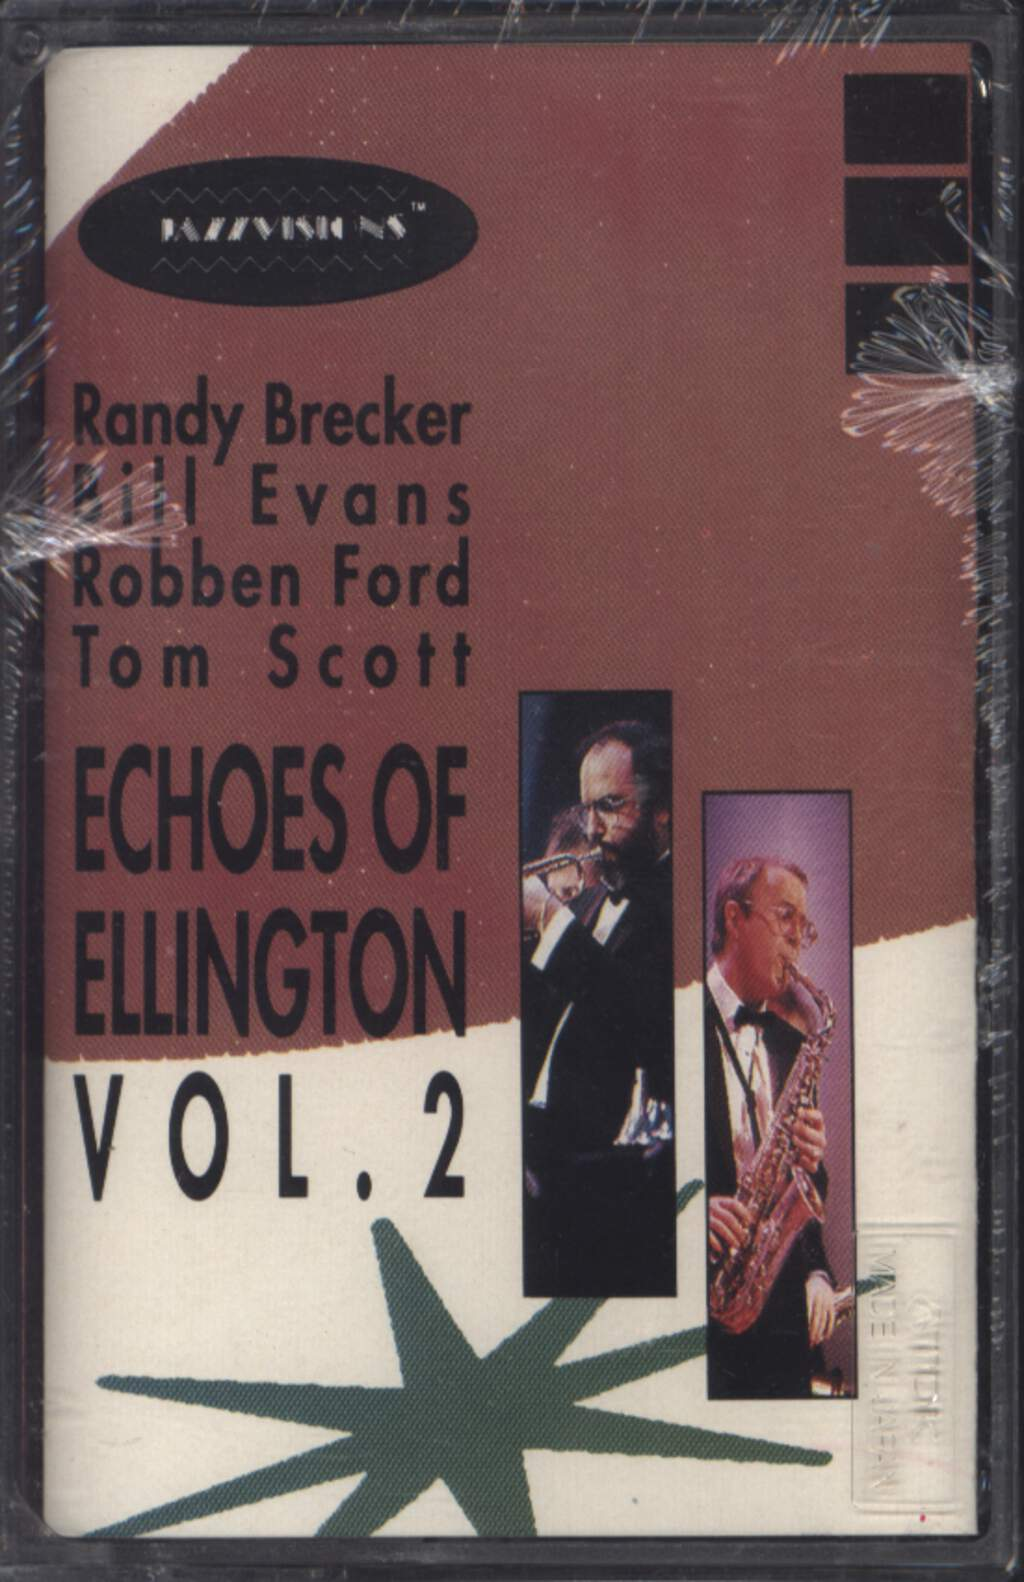 Dianne Reeves: Echoes Of Ellington Vol. 1, Compact Cassette